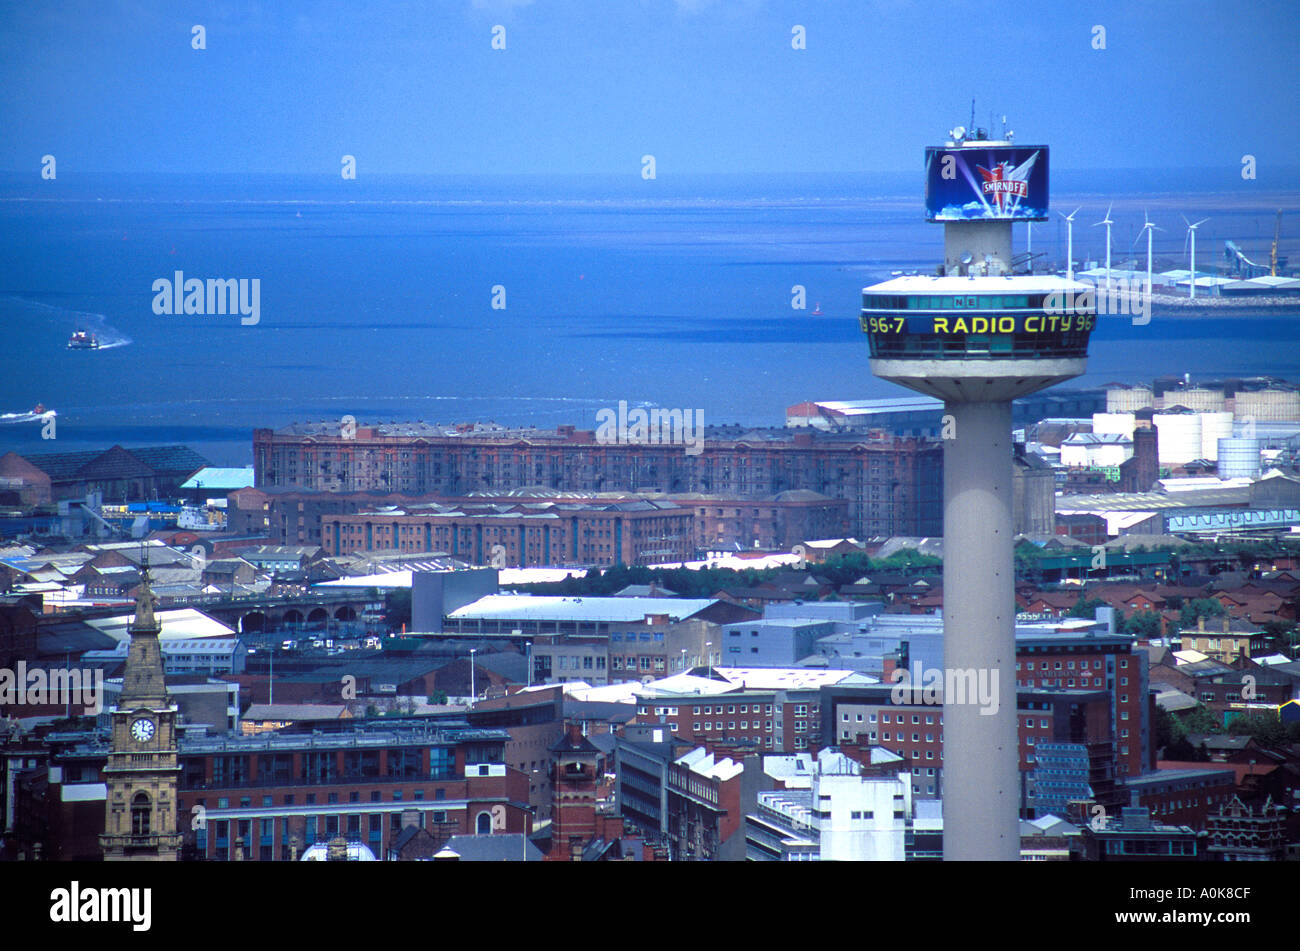 The Beacon Radio Tower with the city of Liverpool UK in the background including the famous Stanley Dock Tobacco Stock Photo